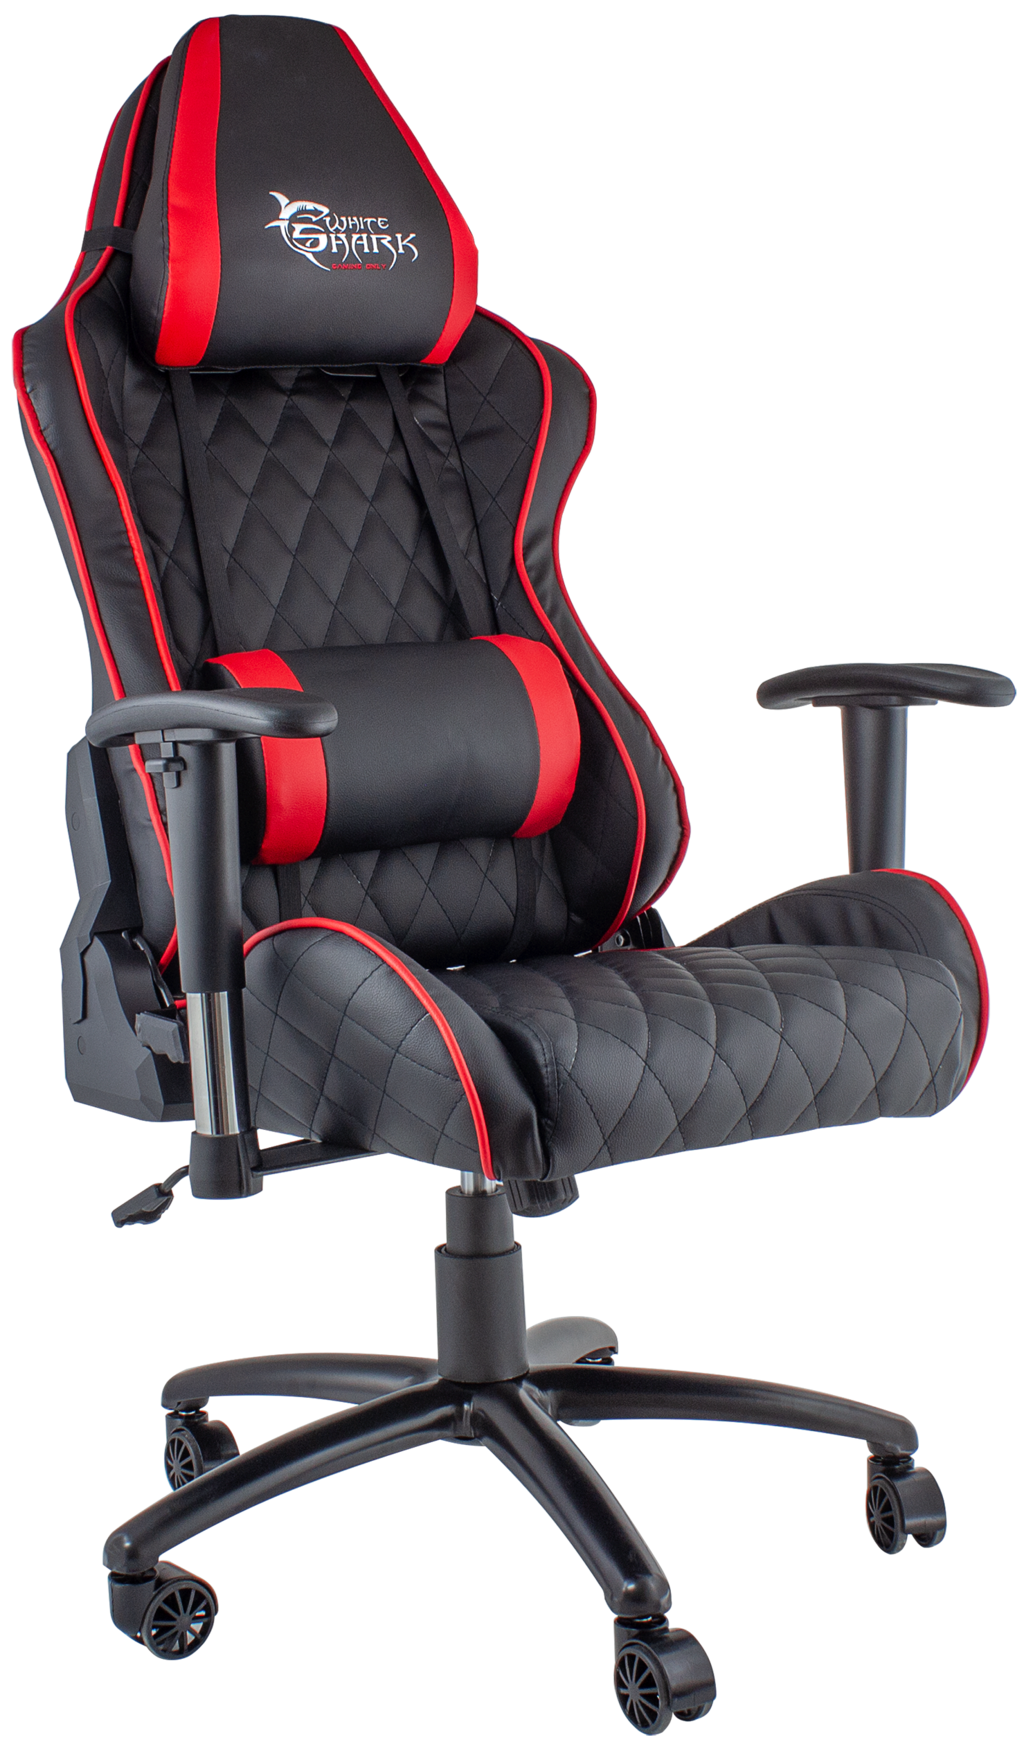 Admirable White Shark Gaming Chair Pro Racer Black Red Machost Co Dining Chair Design Ideas Machostcouk